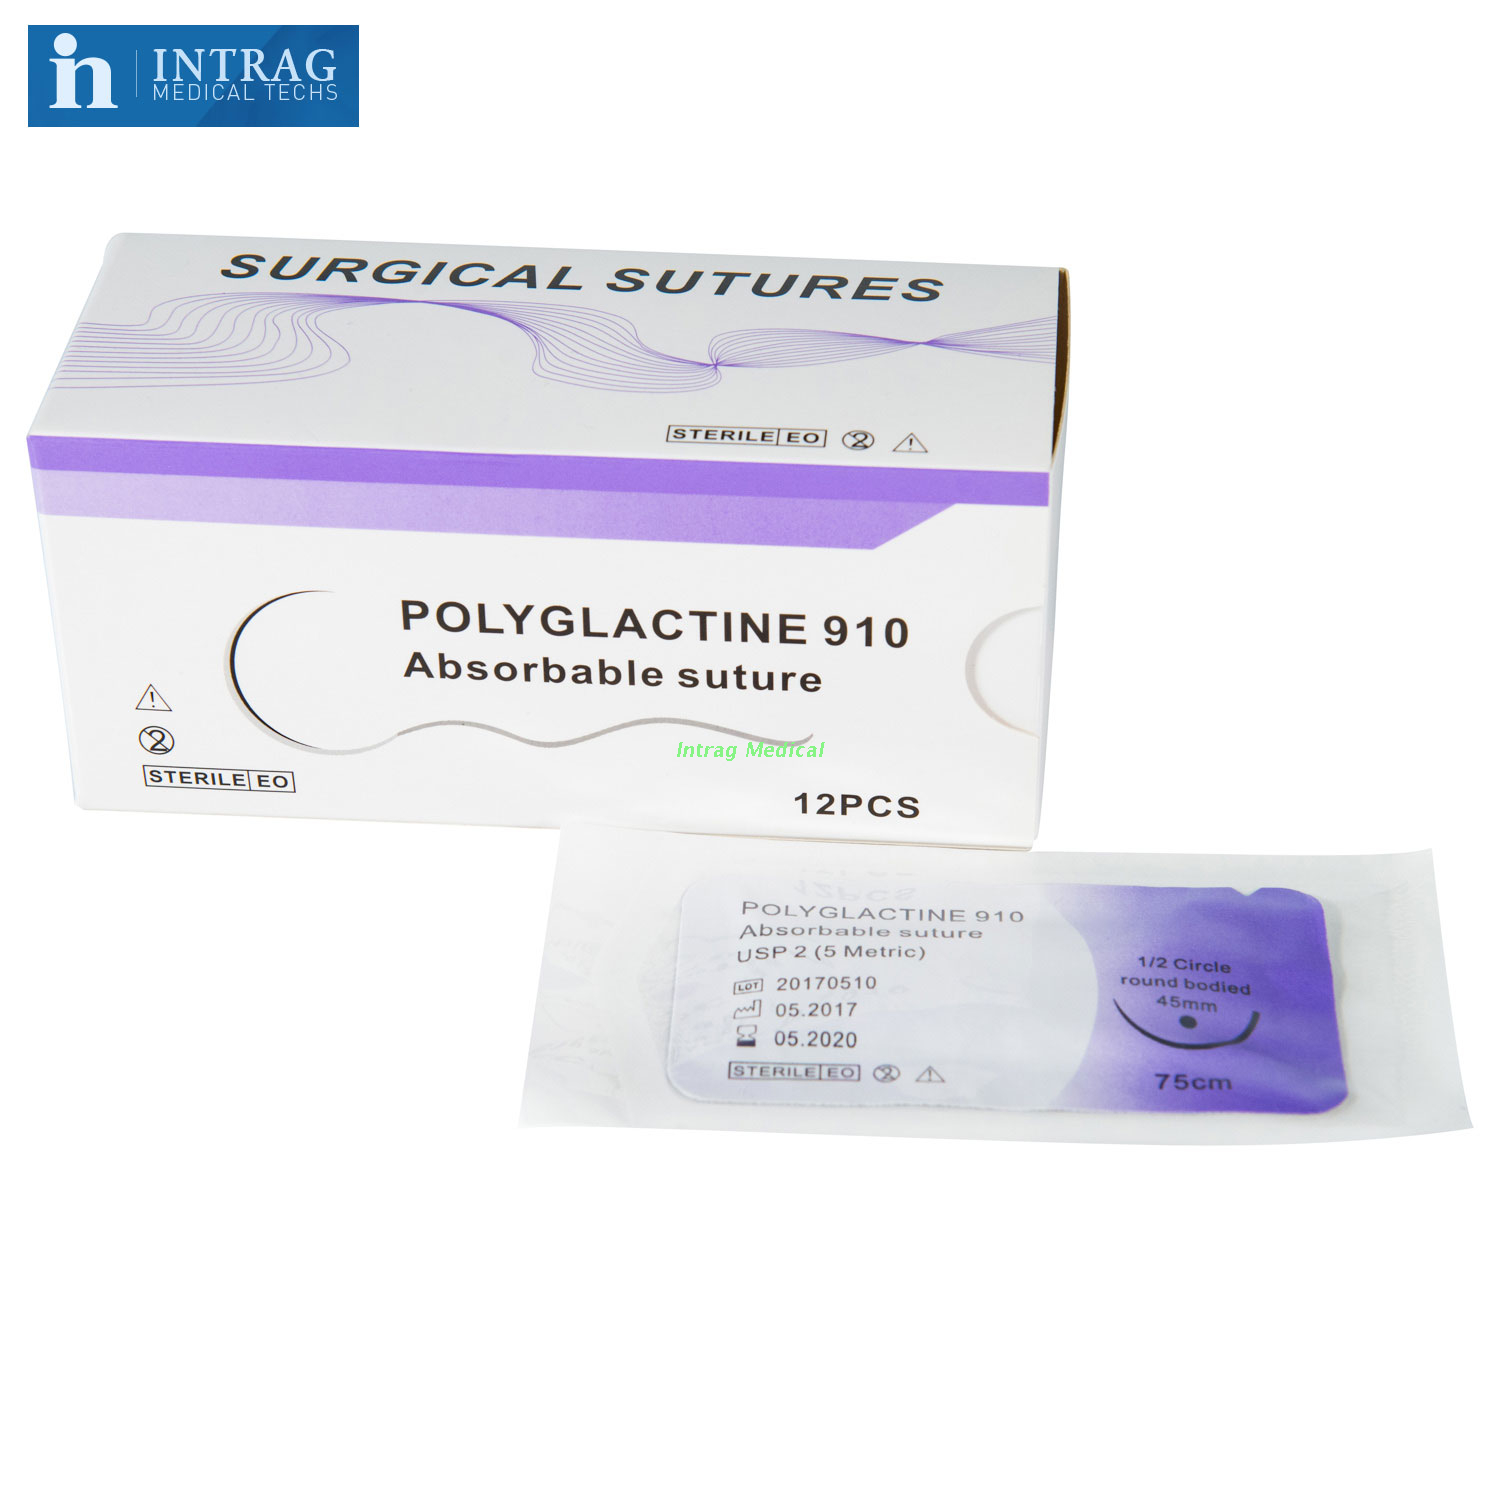 Vicryl Suture